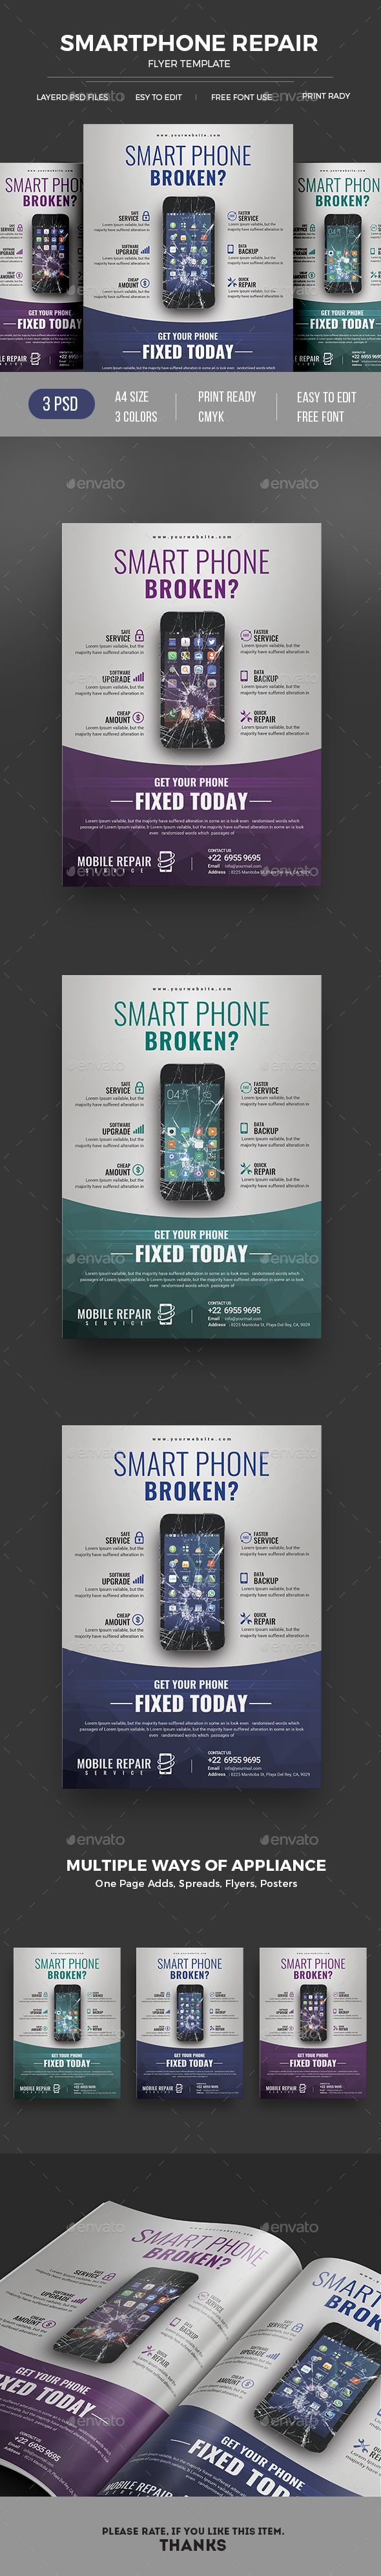 Smartphone Repair by themedevisers Mobile Repair Flyer Template.This mobile repair flyer template is suitable for mobile repair business, computer repair service pro